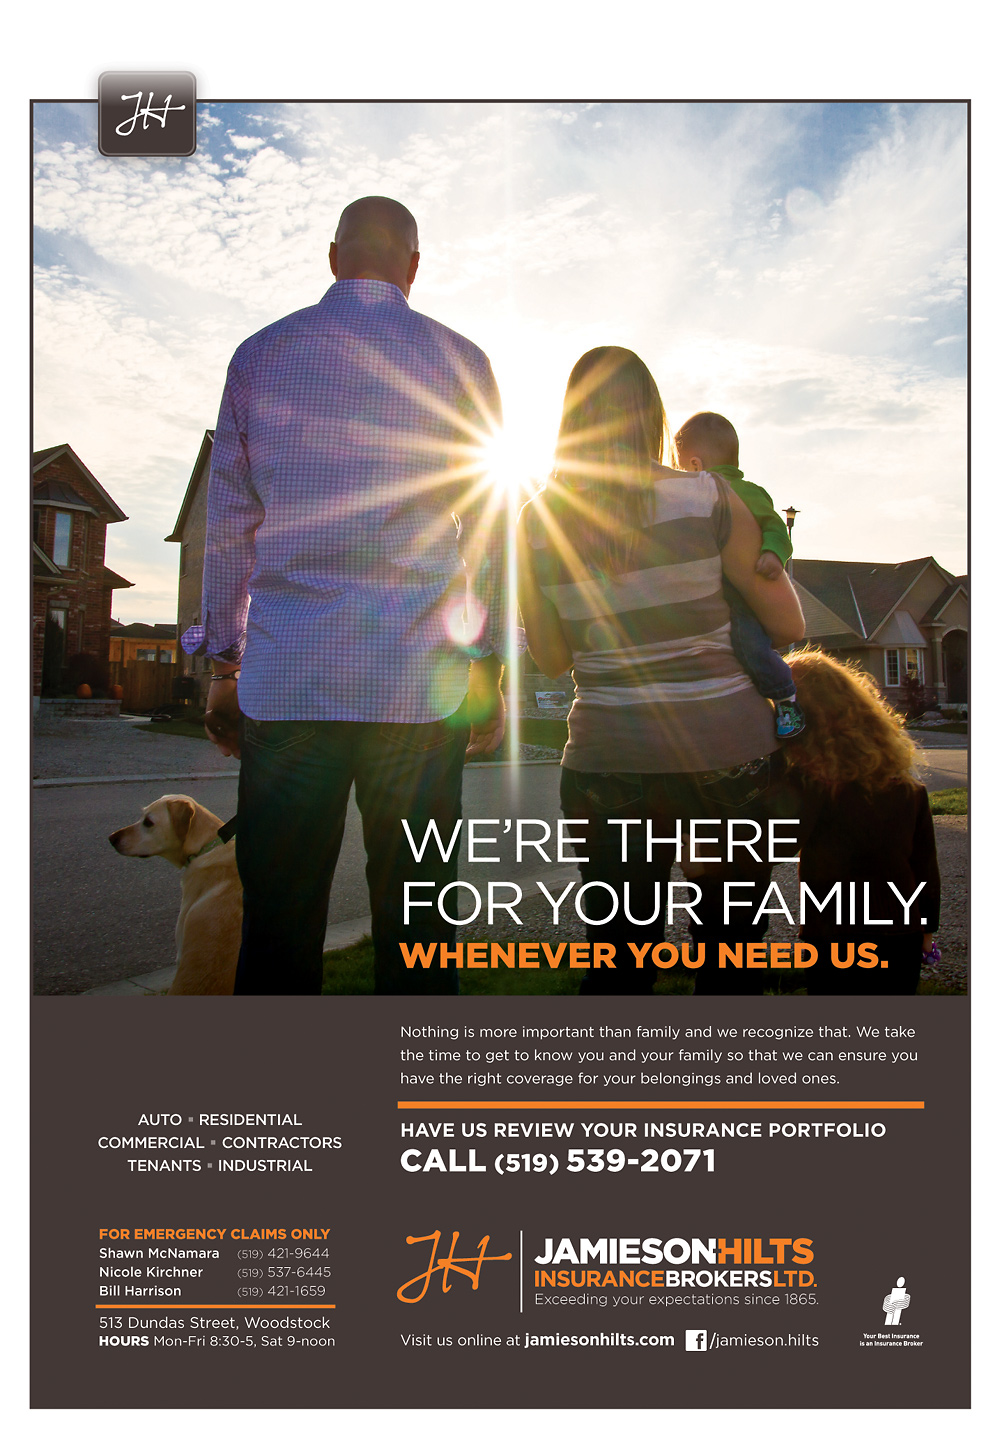 Jamieson-Hilts Insurance full-page magazine ad.